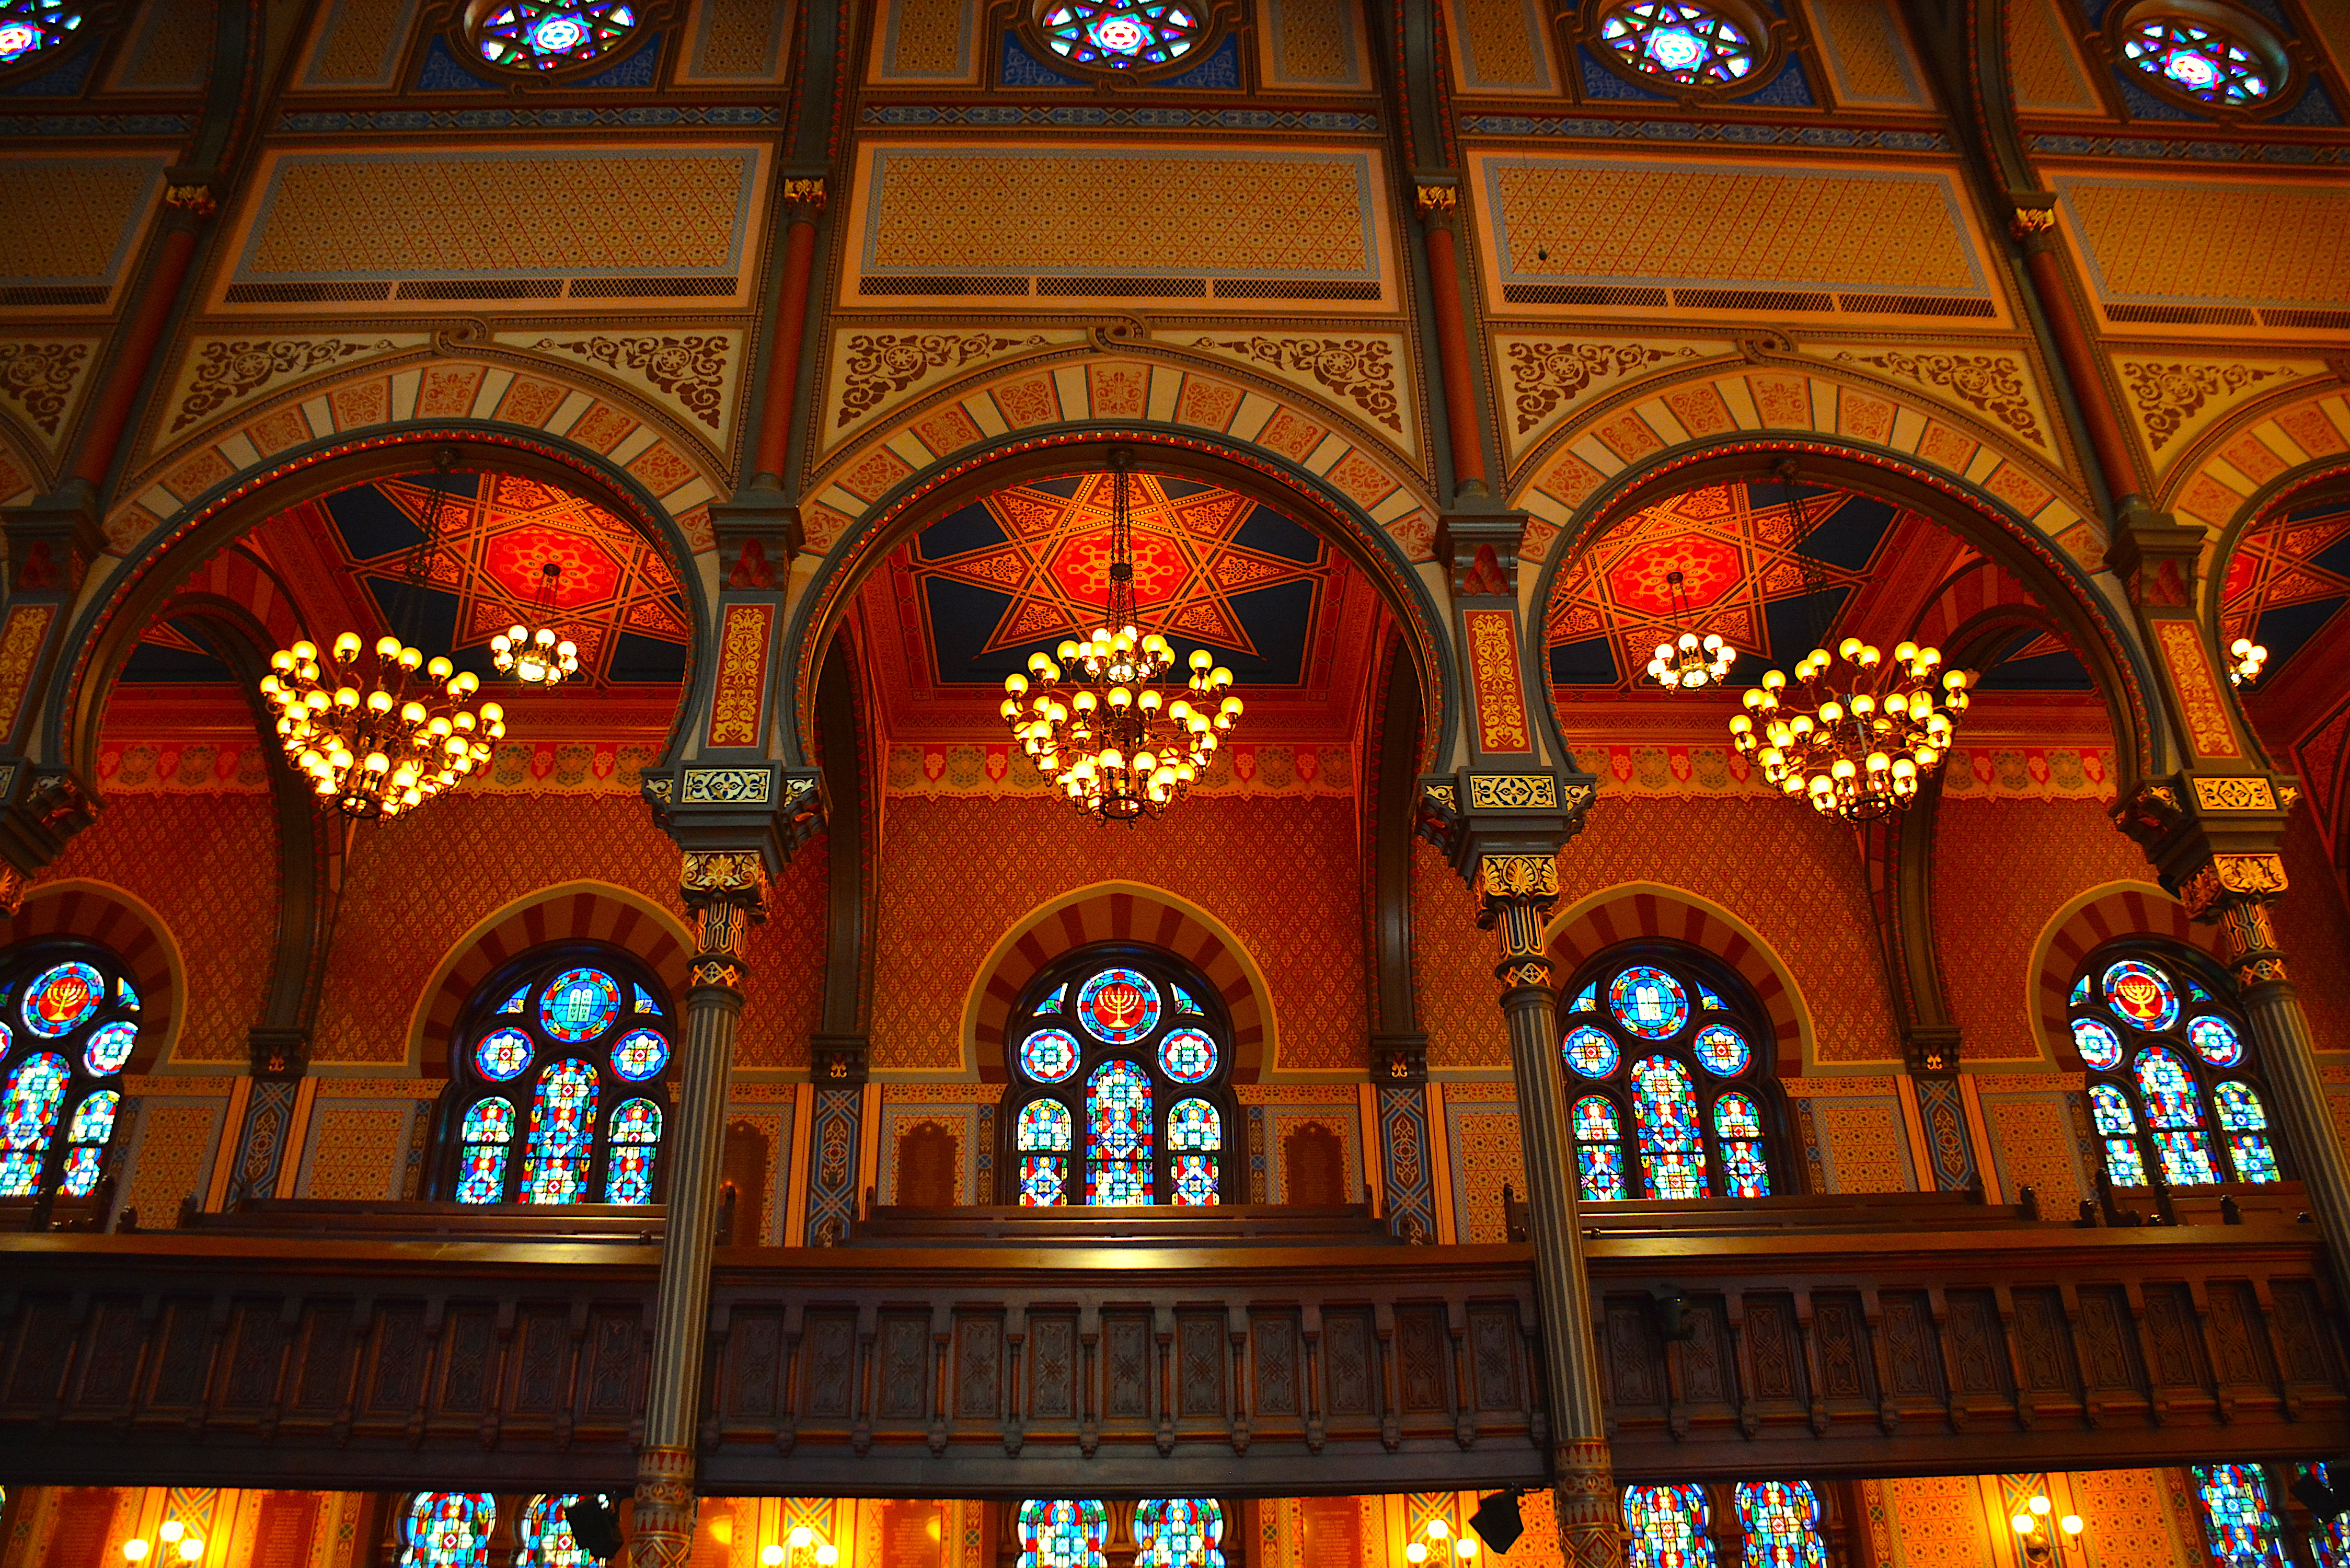 File:Central Synagogue @ Lex jpg - Wikimedia Commons